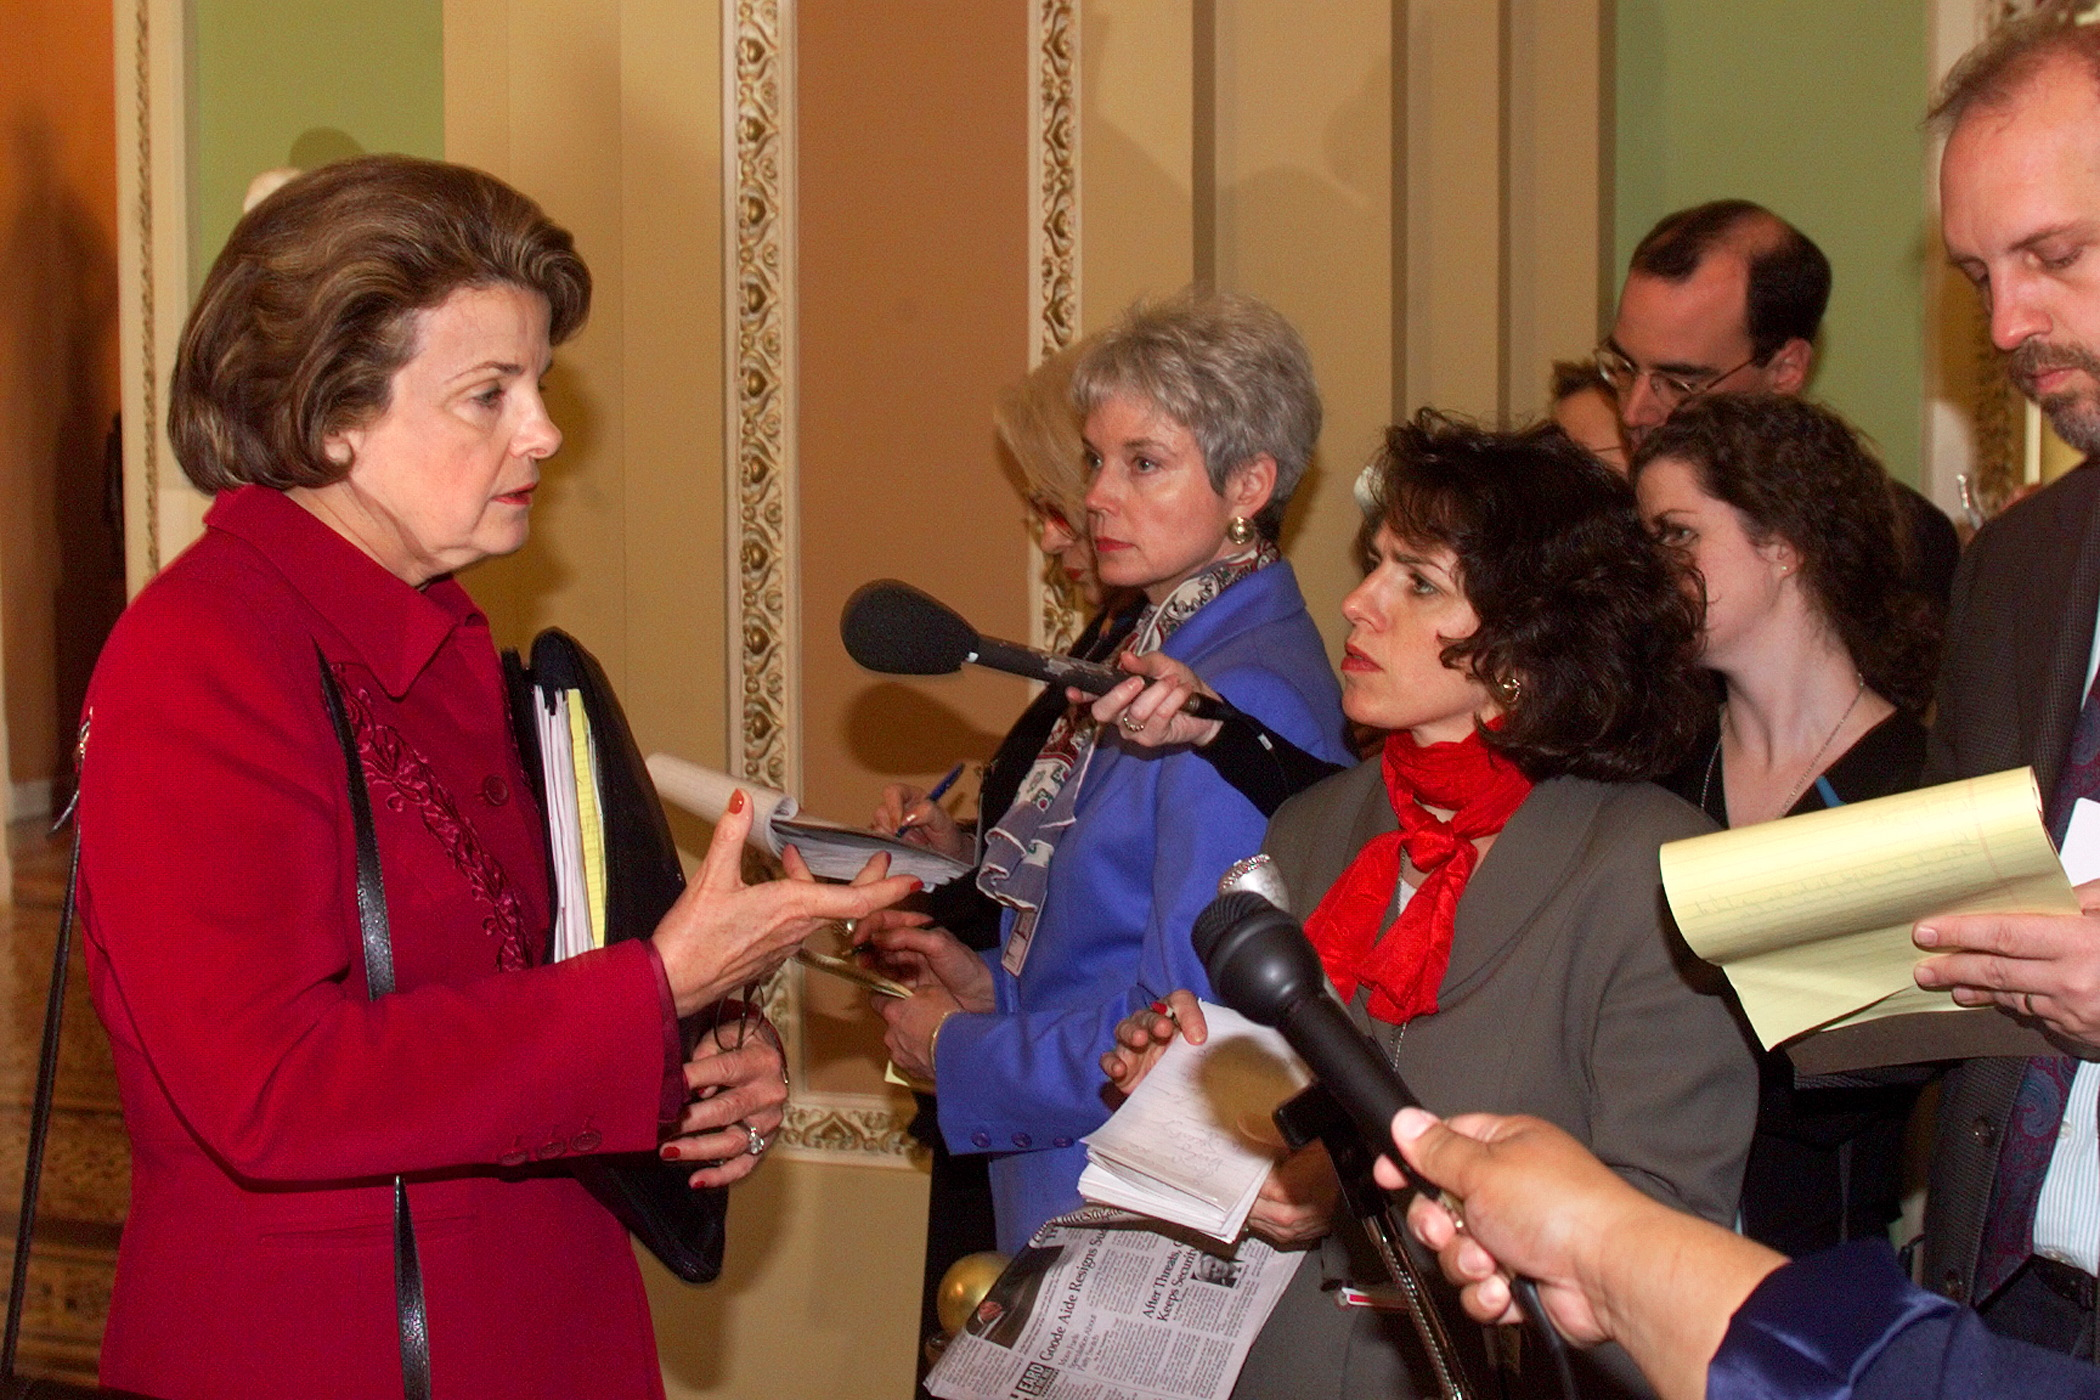 Sn. Dianne Feinstein (D-CA) speaks with reporters outside the US Senate during the sixth day of impeachment trial proceedings against Bill Clinton.